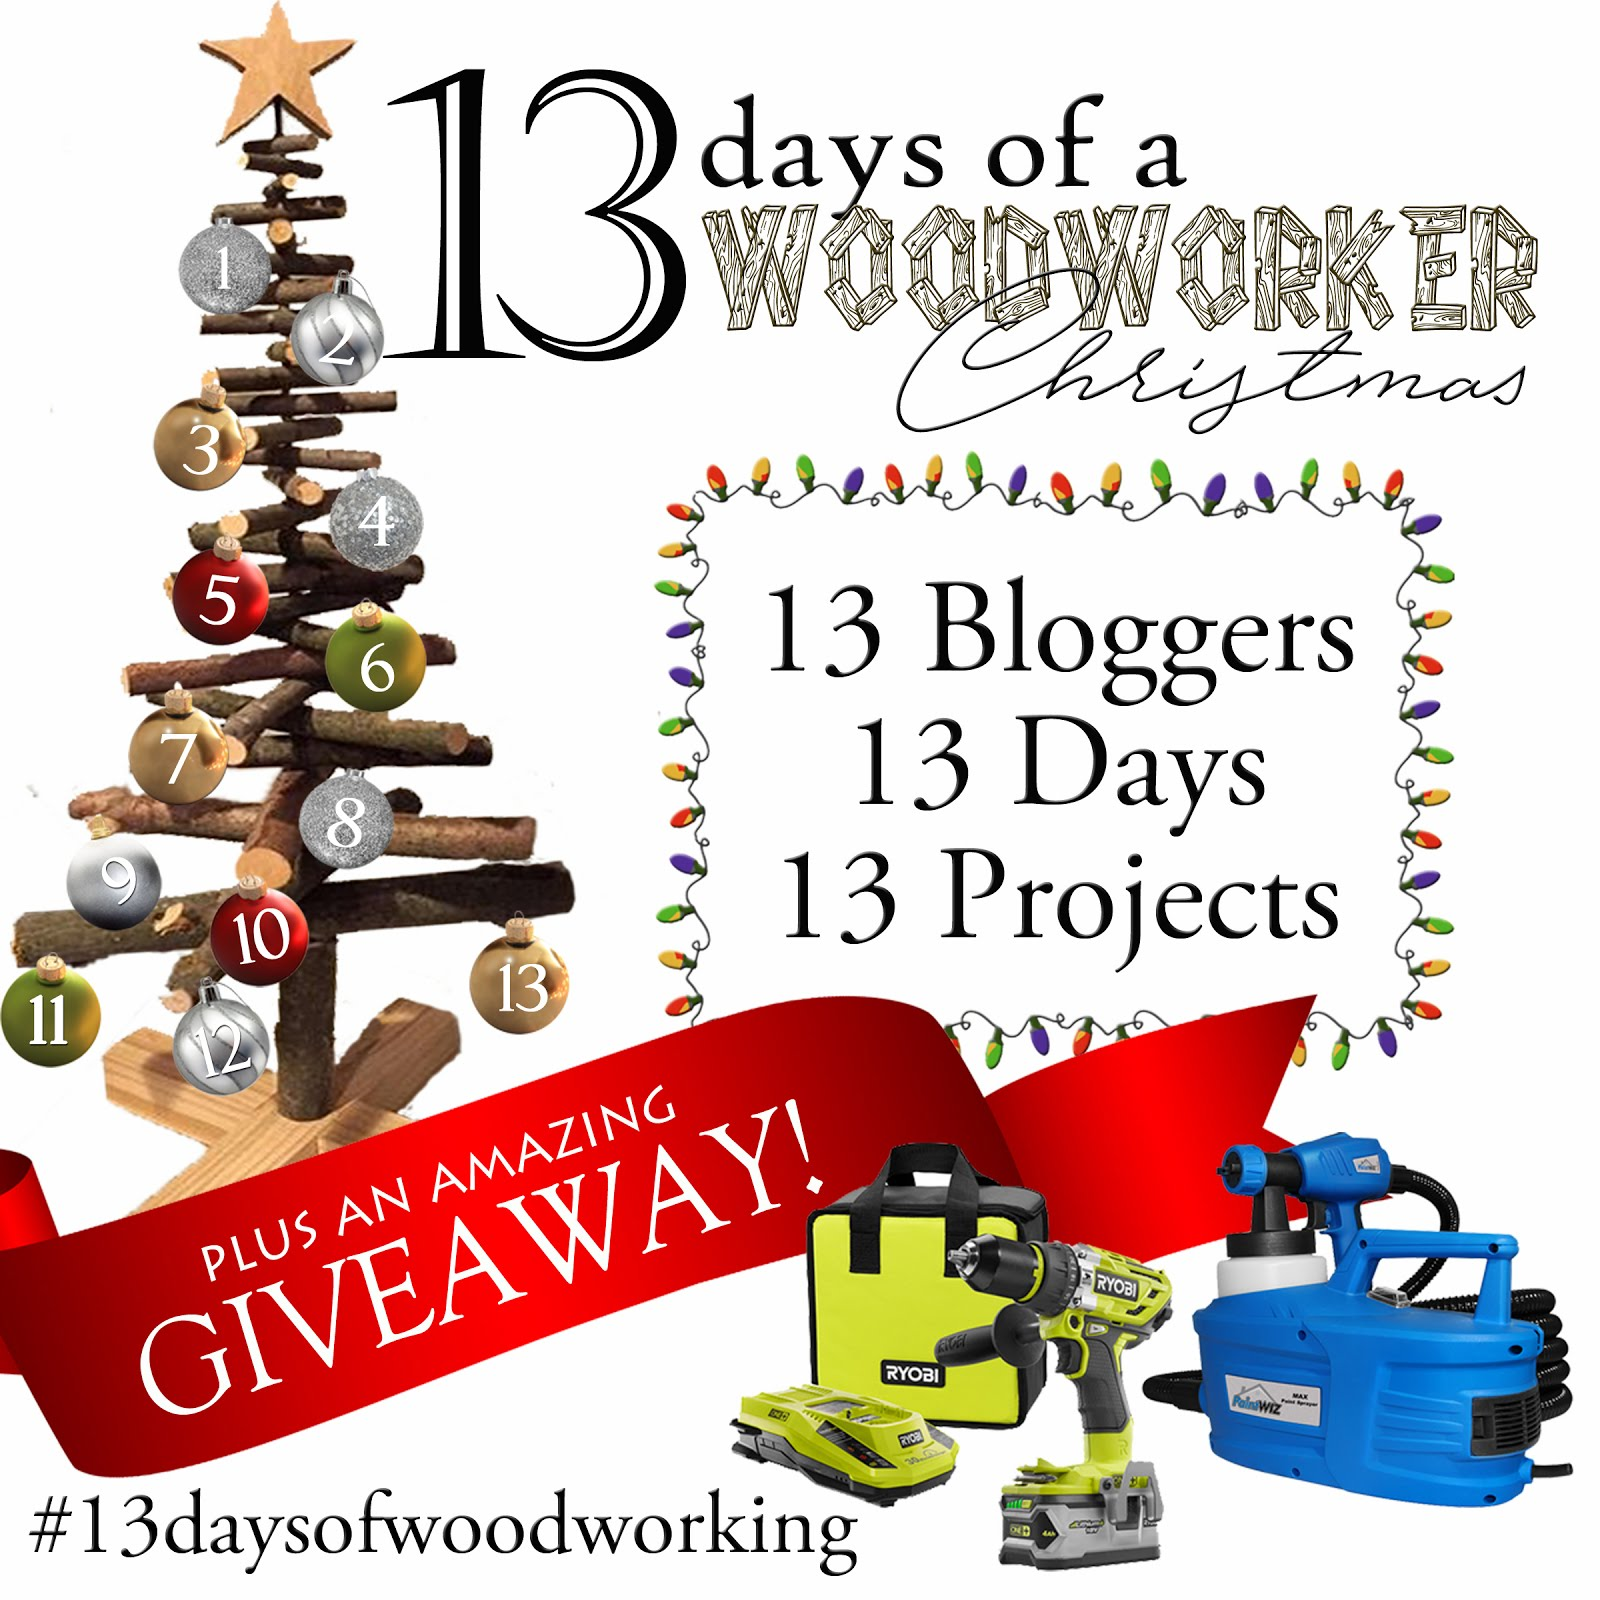 13 Days of a Woodworkers Christmas